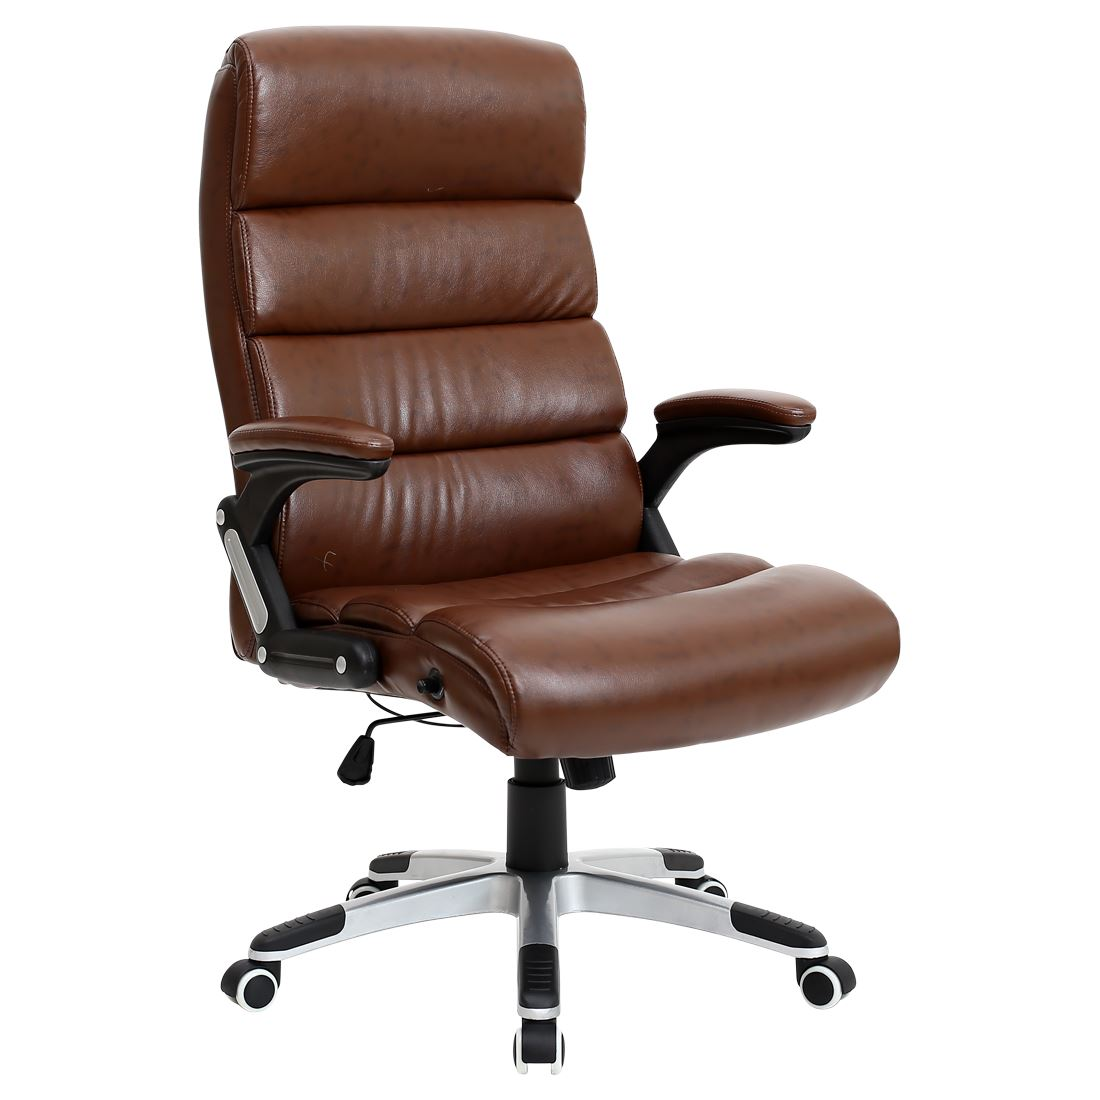 Havana Luxury Reclining Executive Leather Office Desk